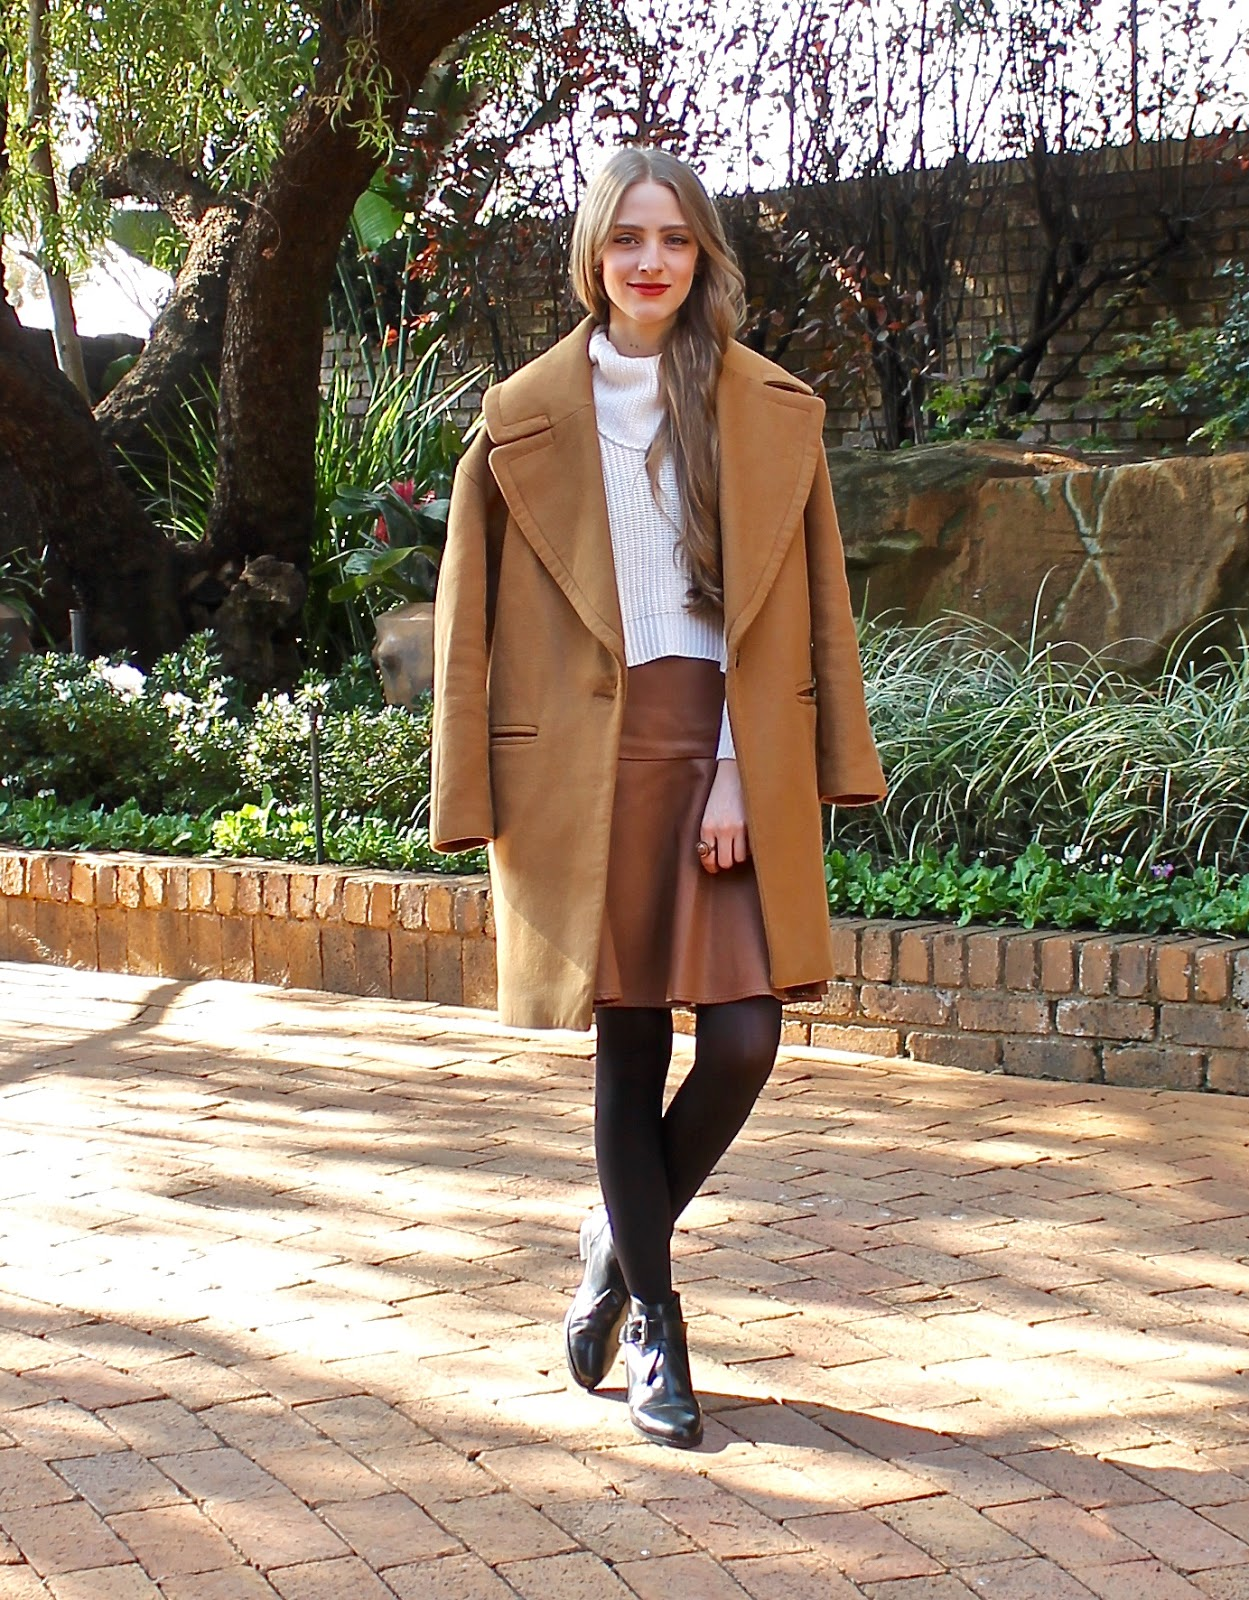 Brown Leather Skirt And Camel Coat